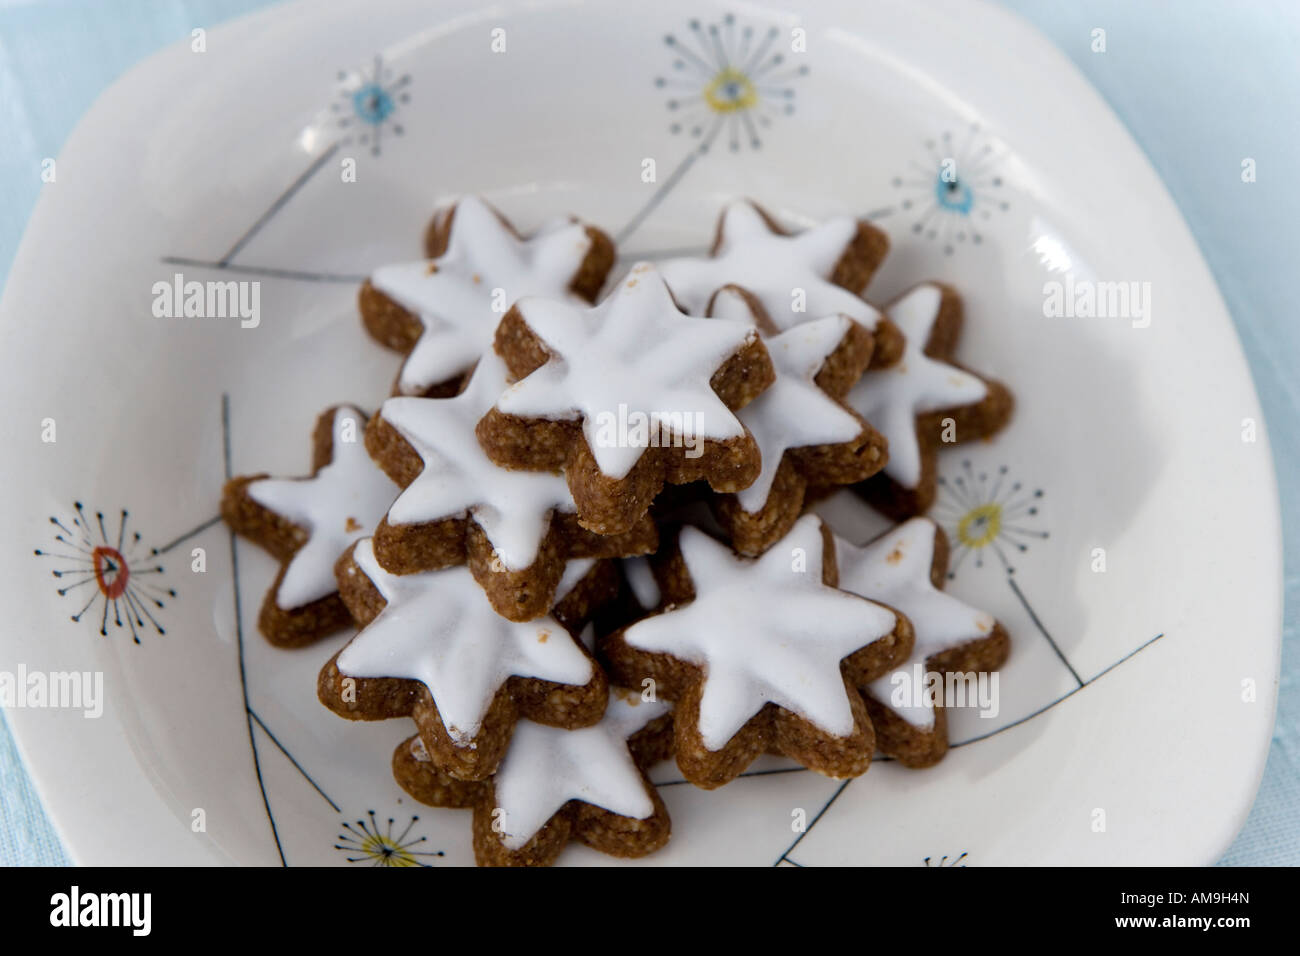 Iced Ginger Biscuits Stock Photo 15193412 Alamy